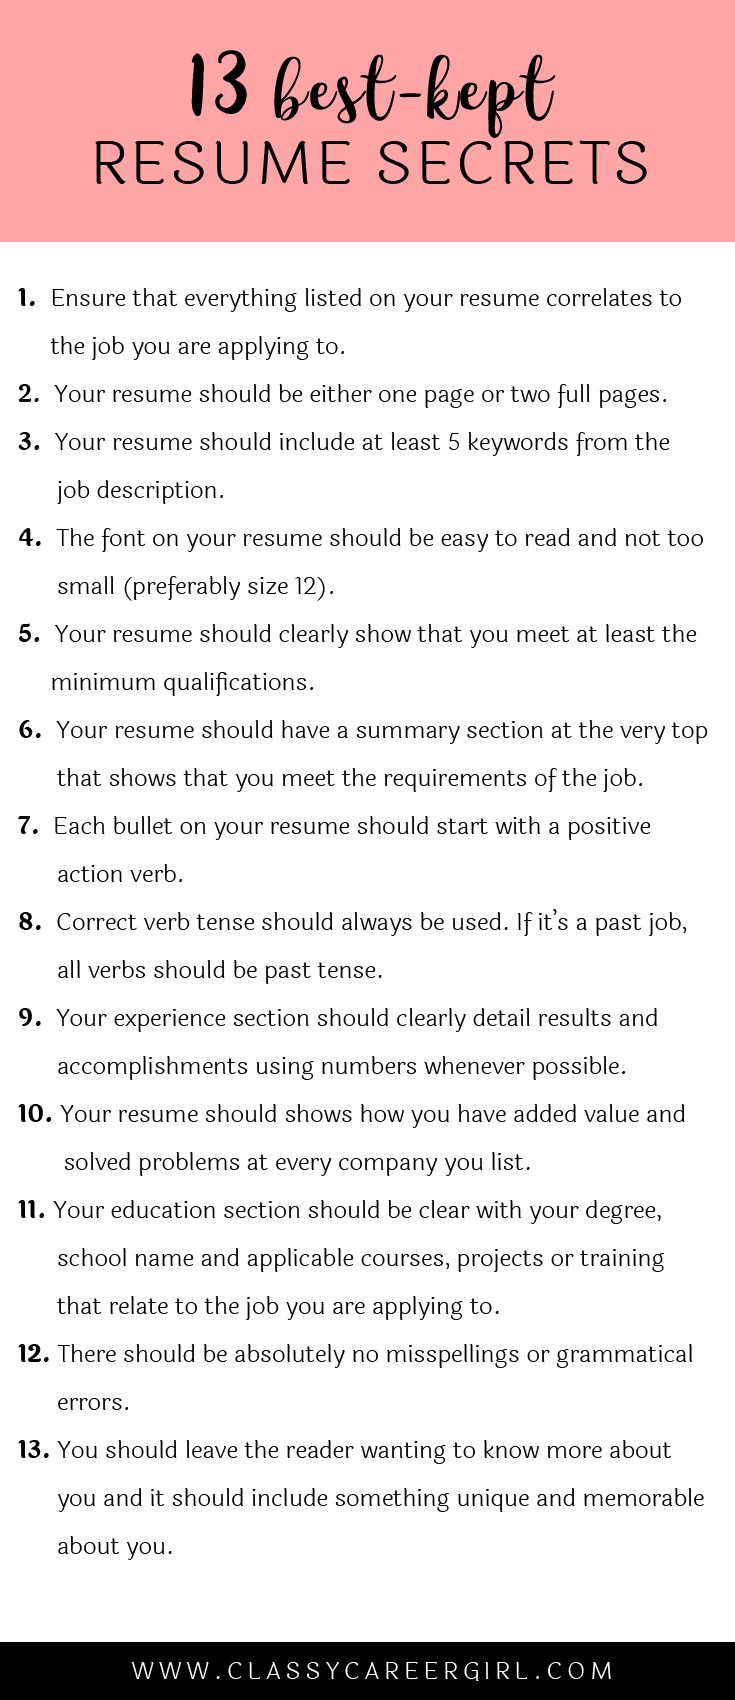 Opposenewapstandardsus  Sweet  Ideas About Resume On Pinterest  Cv Format Resume Cv And  With Great Some Hiring Managers Will Toss Your Resume Out If You Dont Know These  With Beauteous Cool Resume Also What Font Should A Resume Be In Addition Verbs For Resume And Hr Assistant Resume As Well As Best Font Size For Resume Additionally Help Writing A Resume From Pinterestcom With Opposenewapstandardsus  Great  Ideas About Resume On Pinterest  Cv Format Resume Cv And  With Beauteous Some Hiring Managers Will Toss Your Resume Out If You Dont Know These  And Sweet Cool Resume Also What Font Should A Resume Be In Addition Verbs For Resume From Pinterestcom